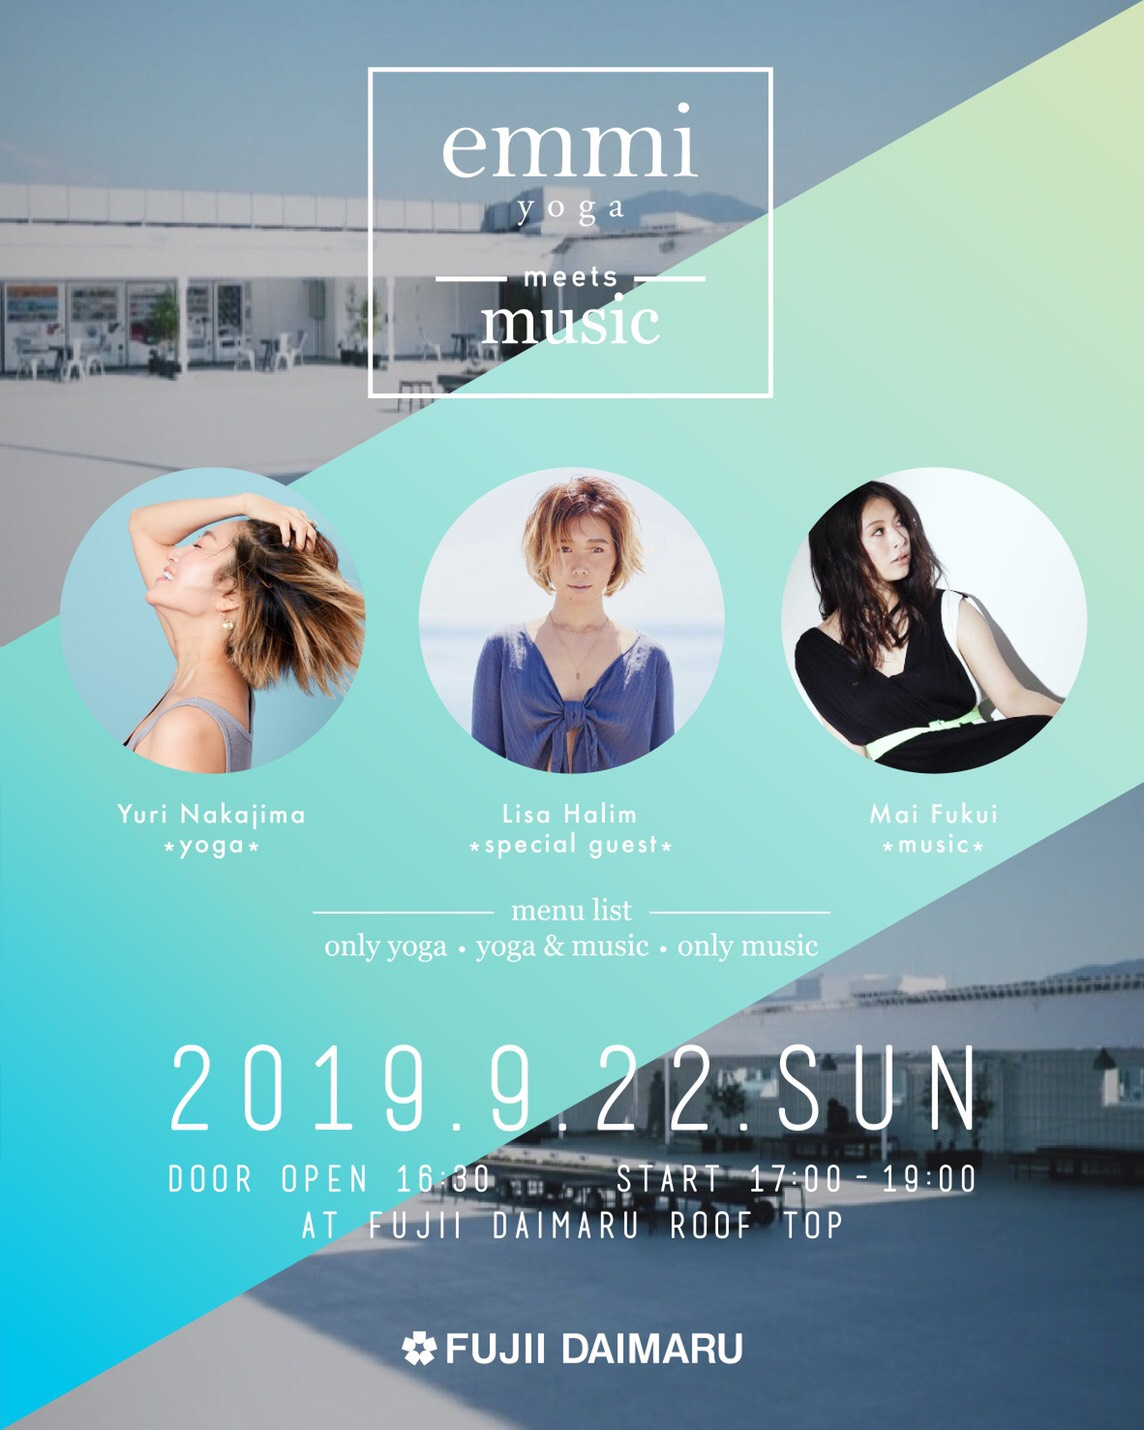 emmi yoga meets music